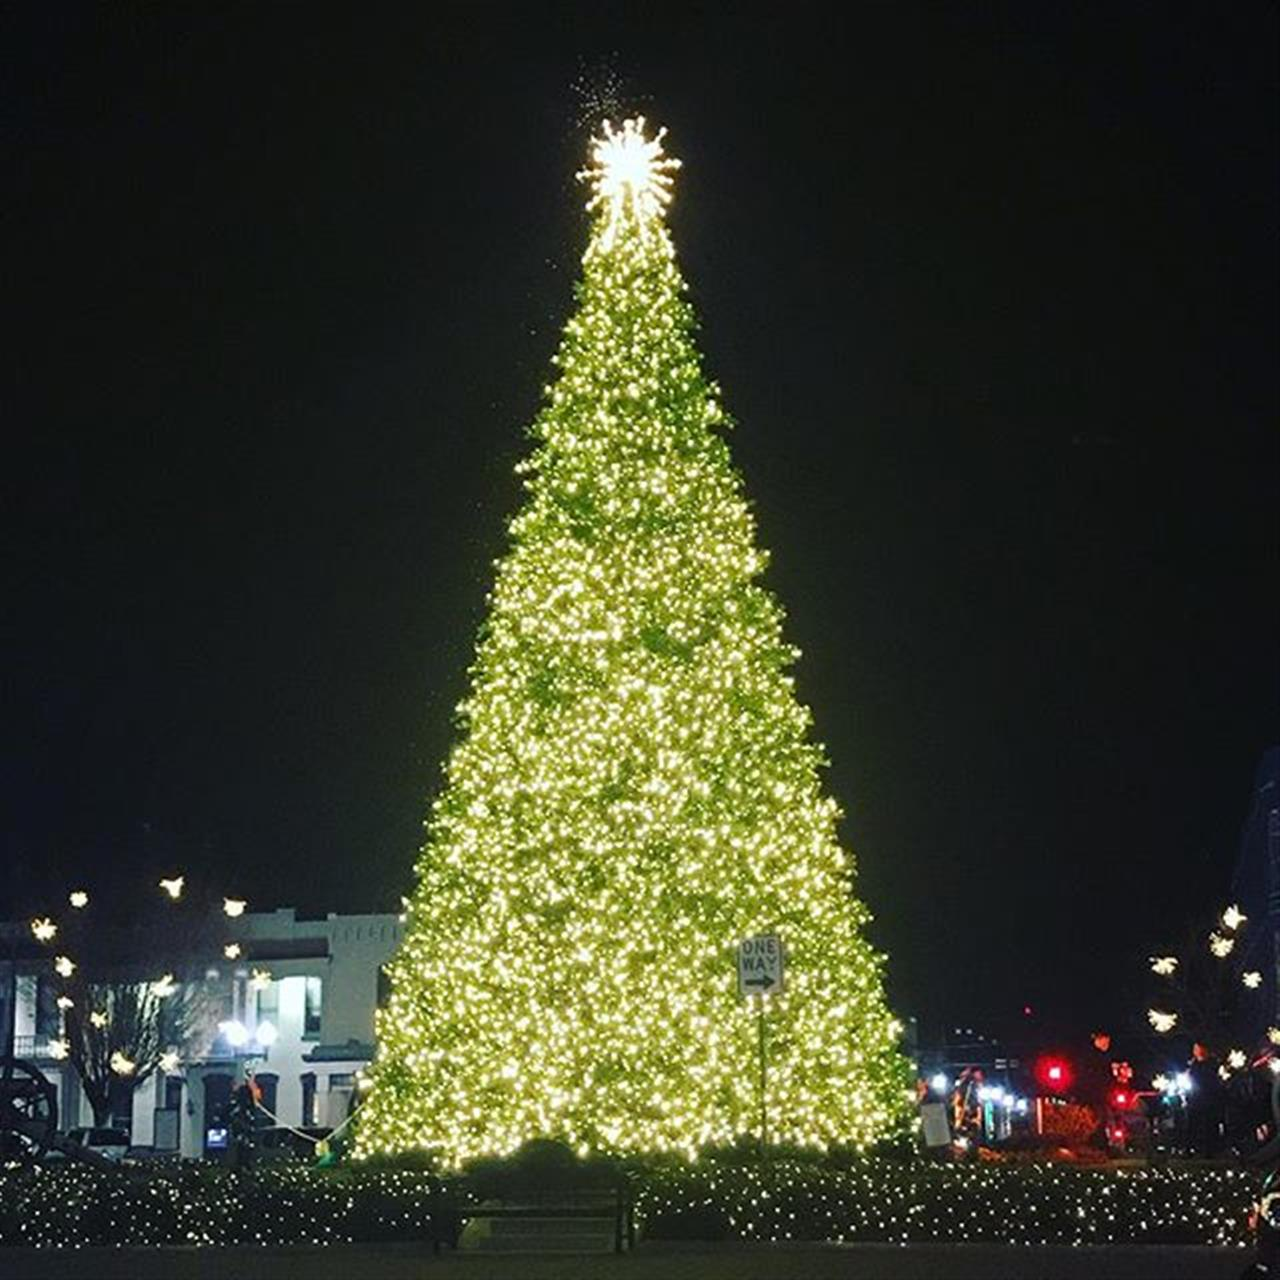 Which Tennessee town has the best Christmas tree? Tag us in your photos!  #MerryChristmas #TennesseeChristmas #ParksRealty #LeadingRe #Franklin #LeadingRELocal